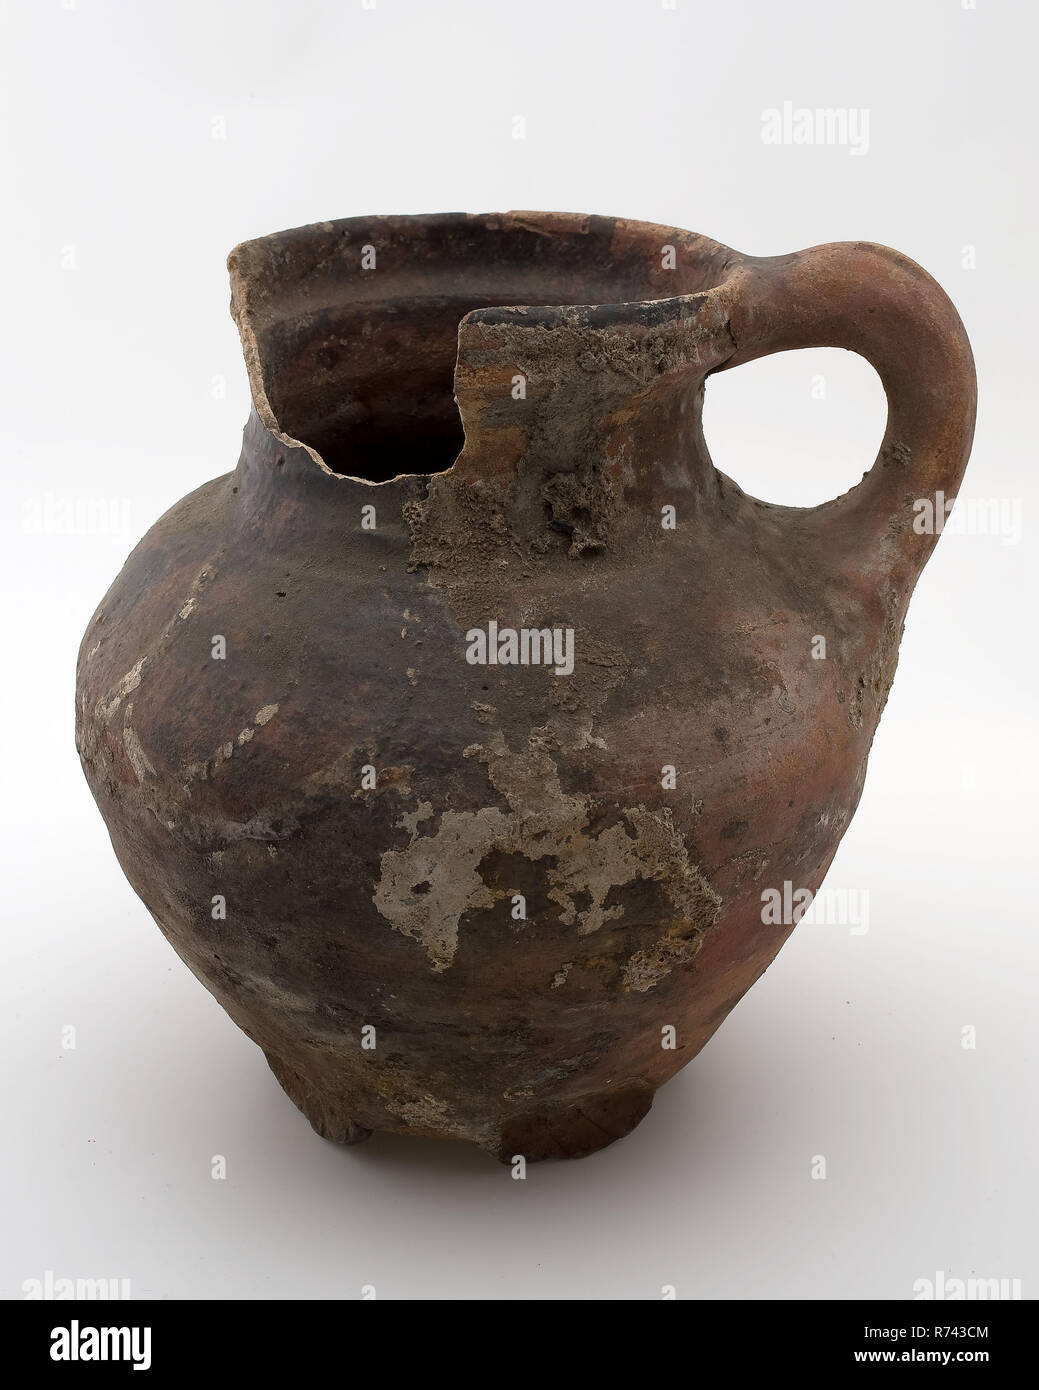 Pottery jug be placed on five stand fins, red shard, silt